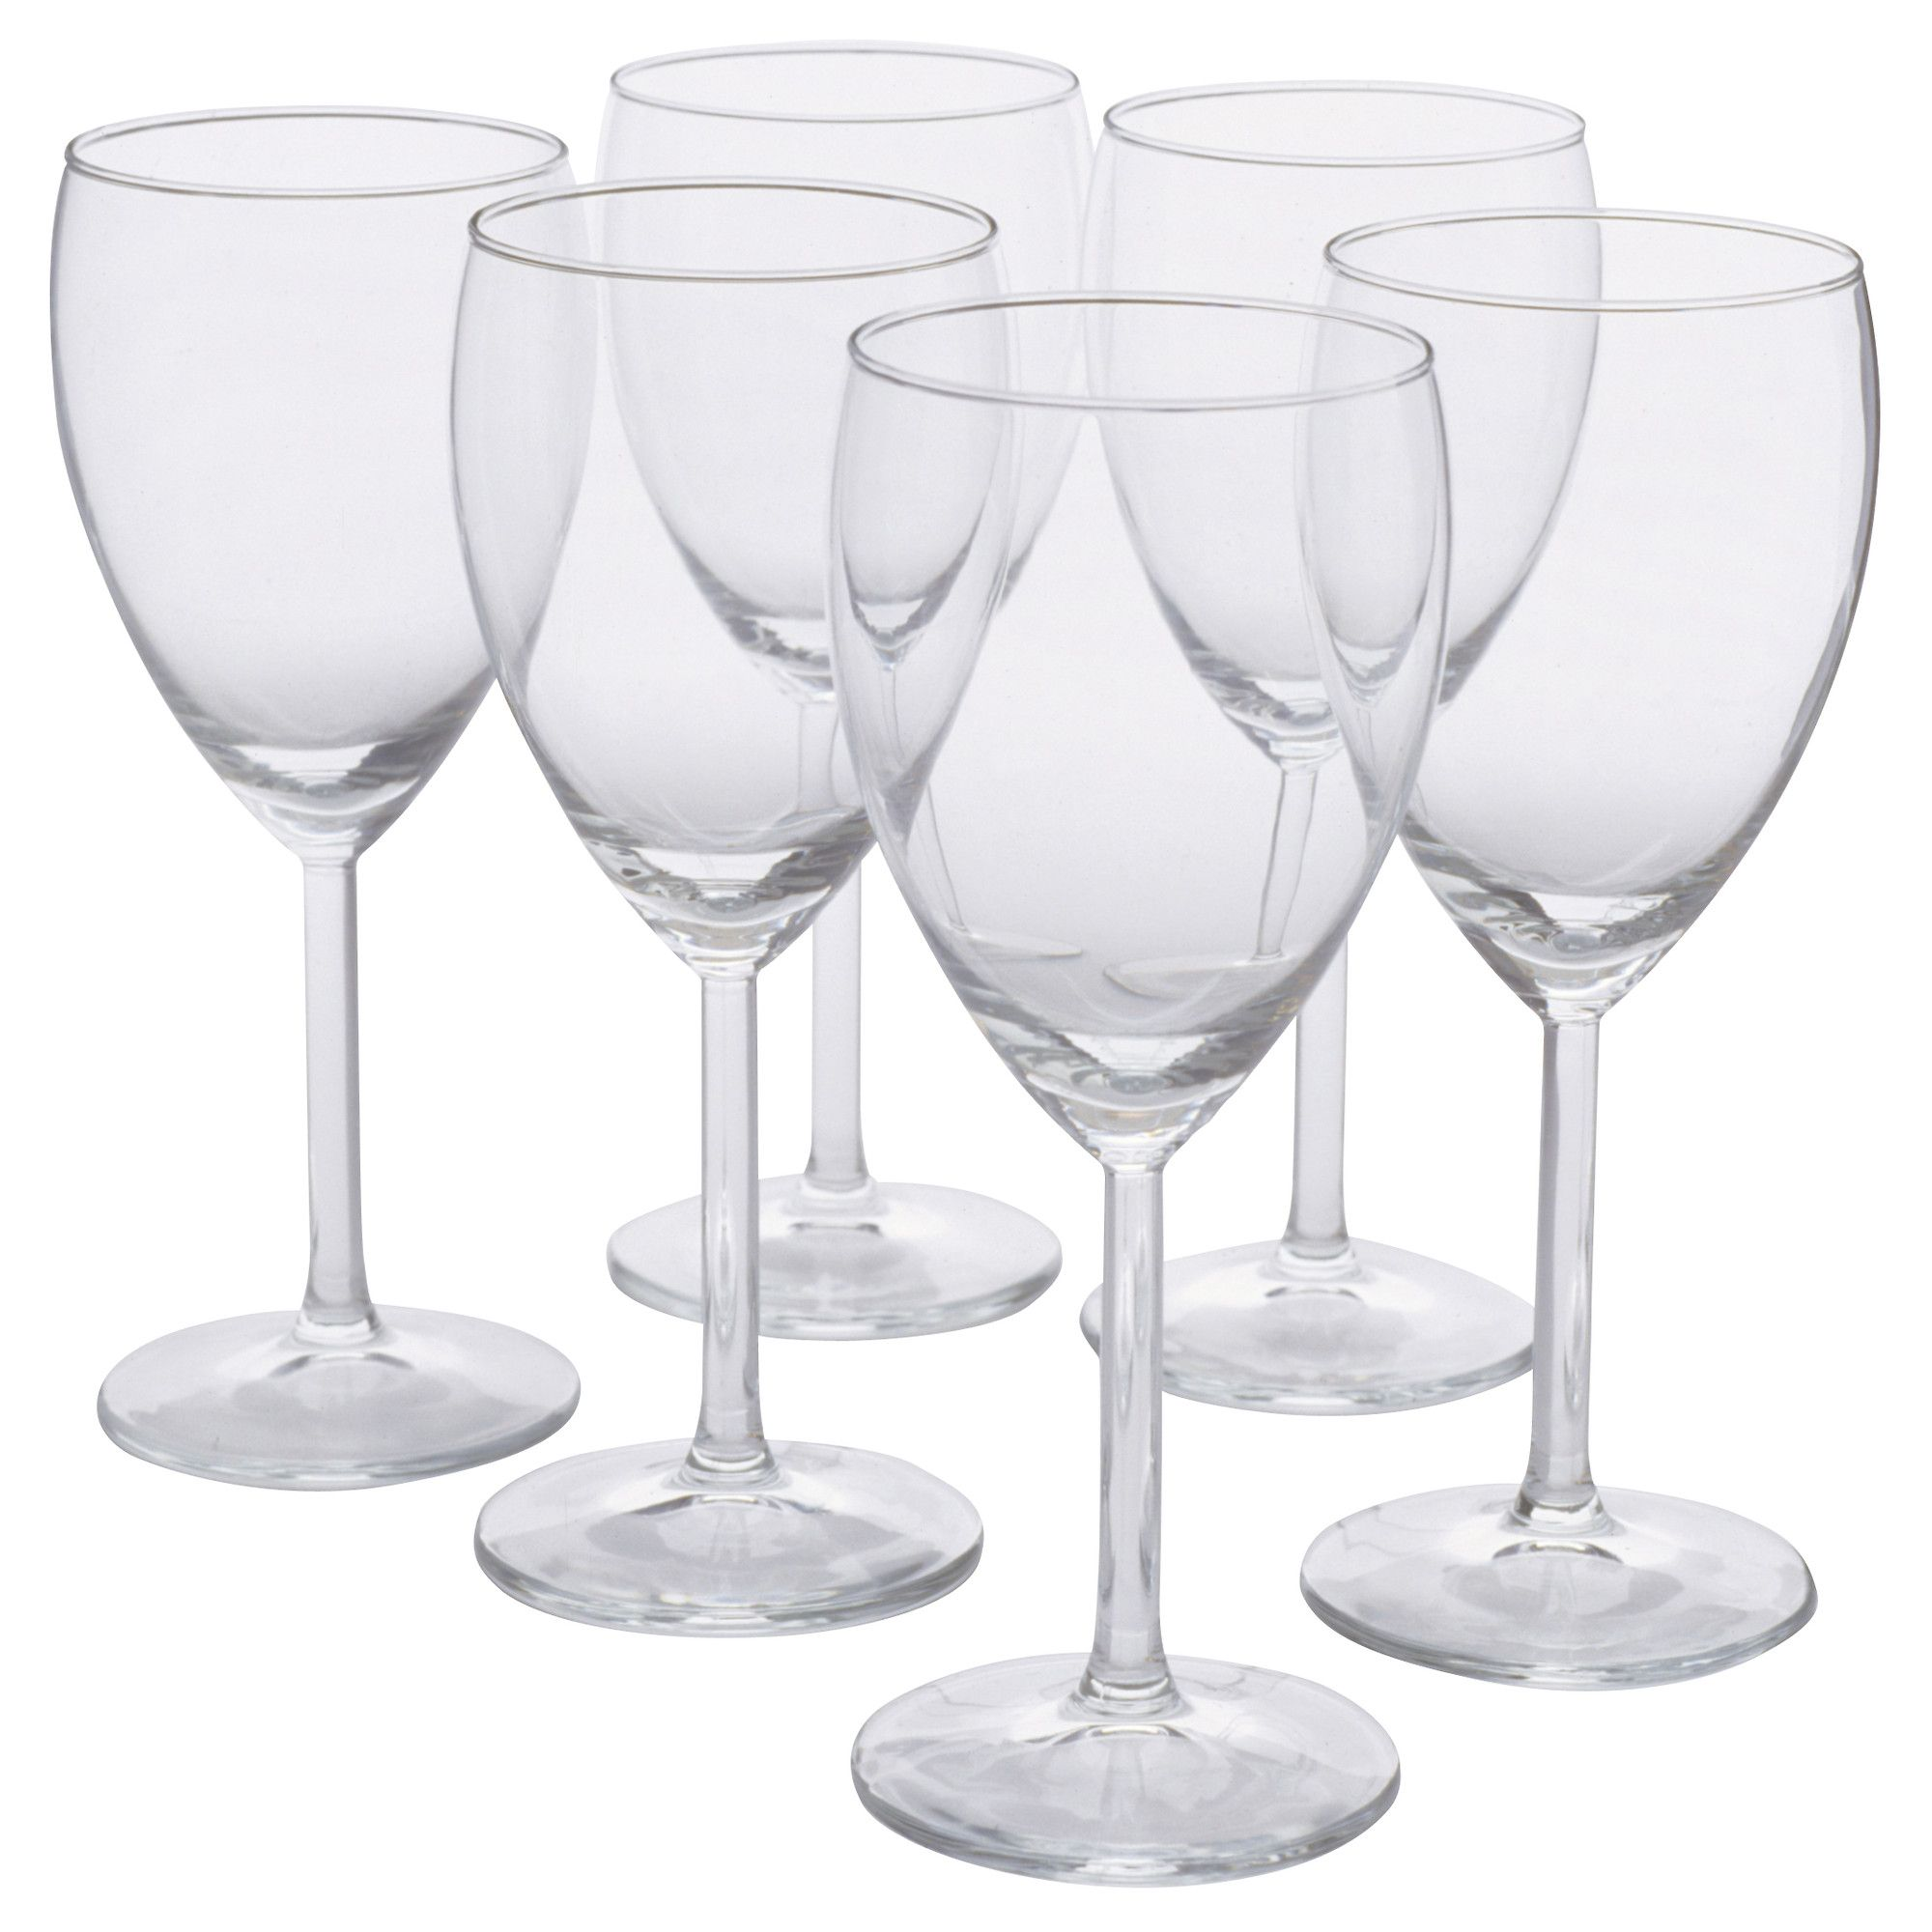 ikea svalka white wine glass clear glass 6 pack size. Black Bedroom Furniture Sets. Home Design Ideas